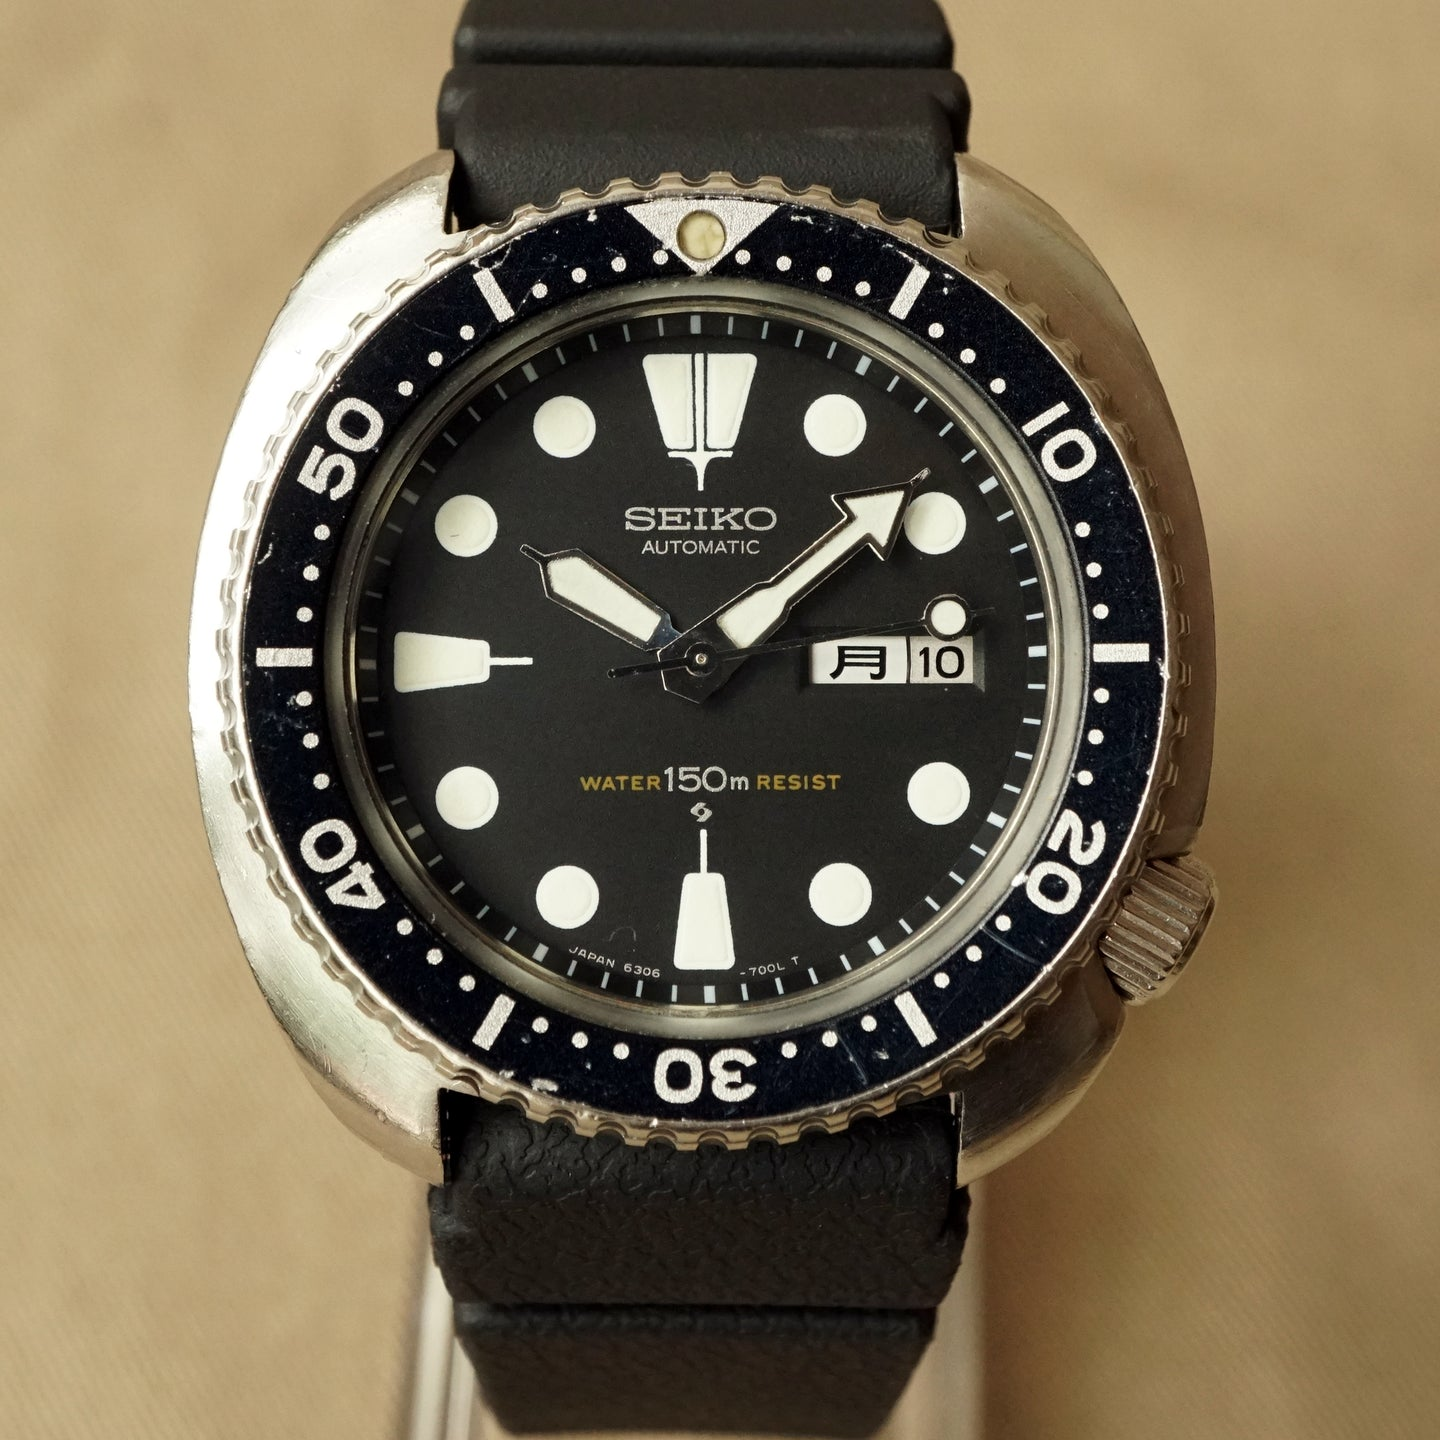 1978 SEIKO REF.6306-7001 150M DIVERS WATCH ORIGINAL CONDITION